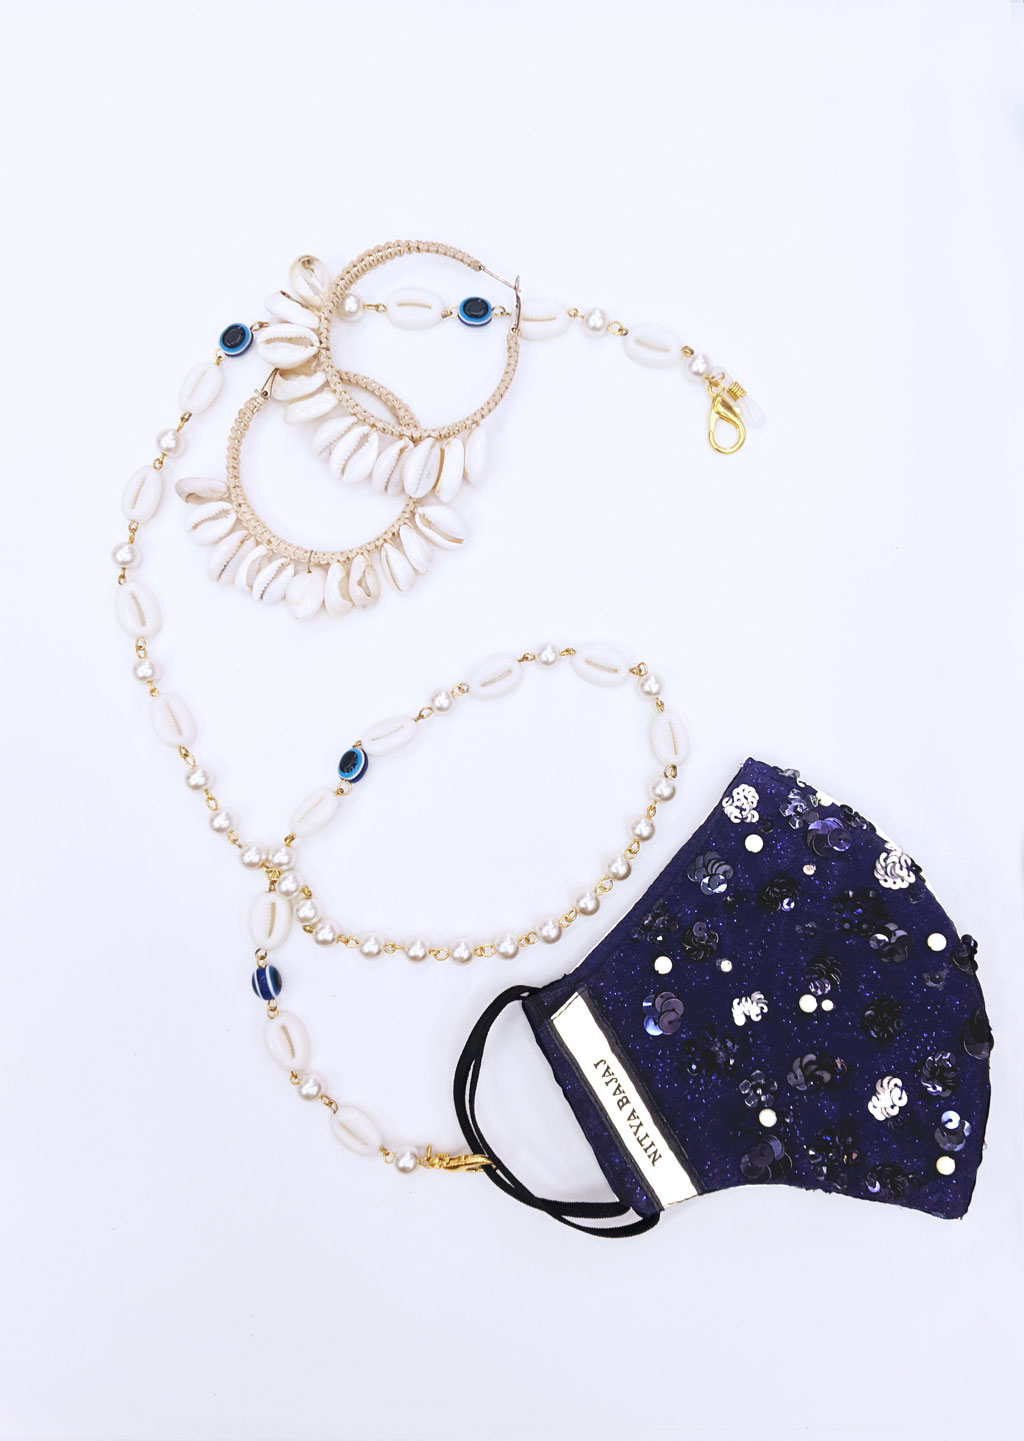 Shell and Pearl MaskChain with metal closures for masks and Rubber loops for Sunglasses